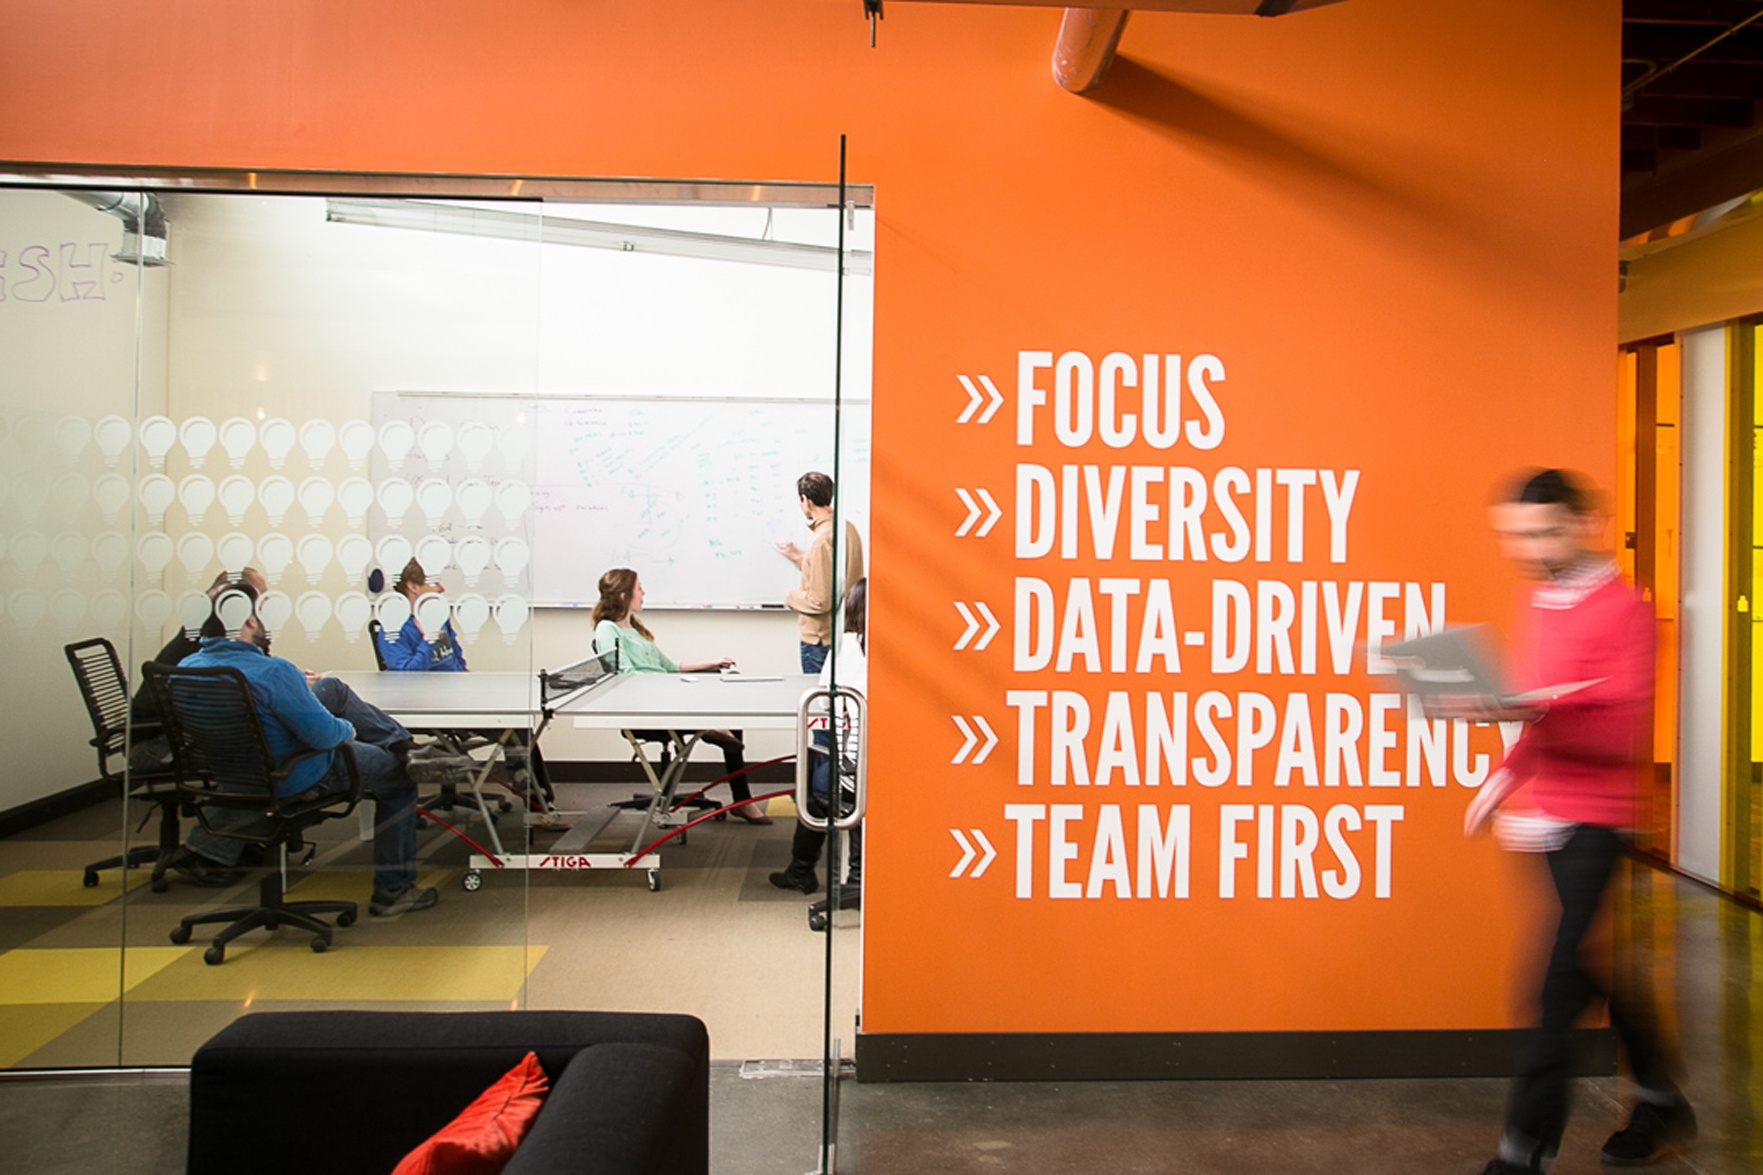 photo & video people working in an omaha startup office man walking with laptop  focus diversity data driven transparency team first